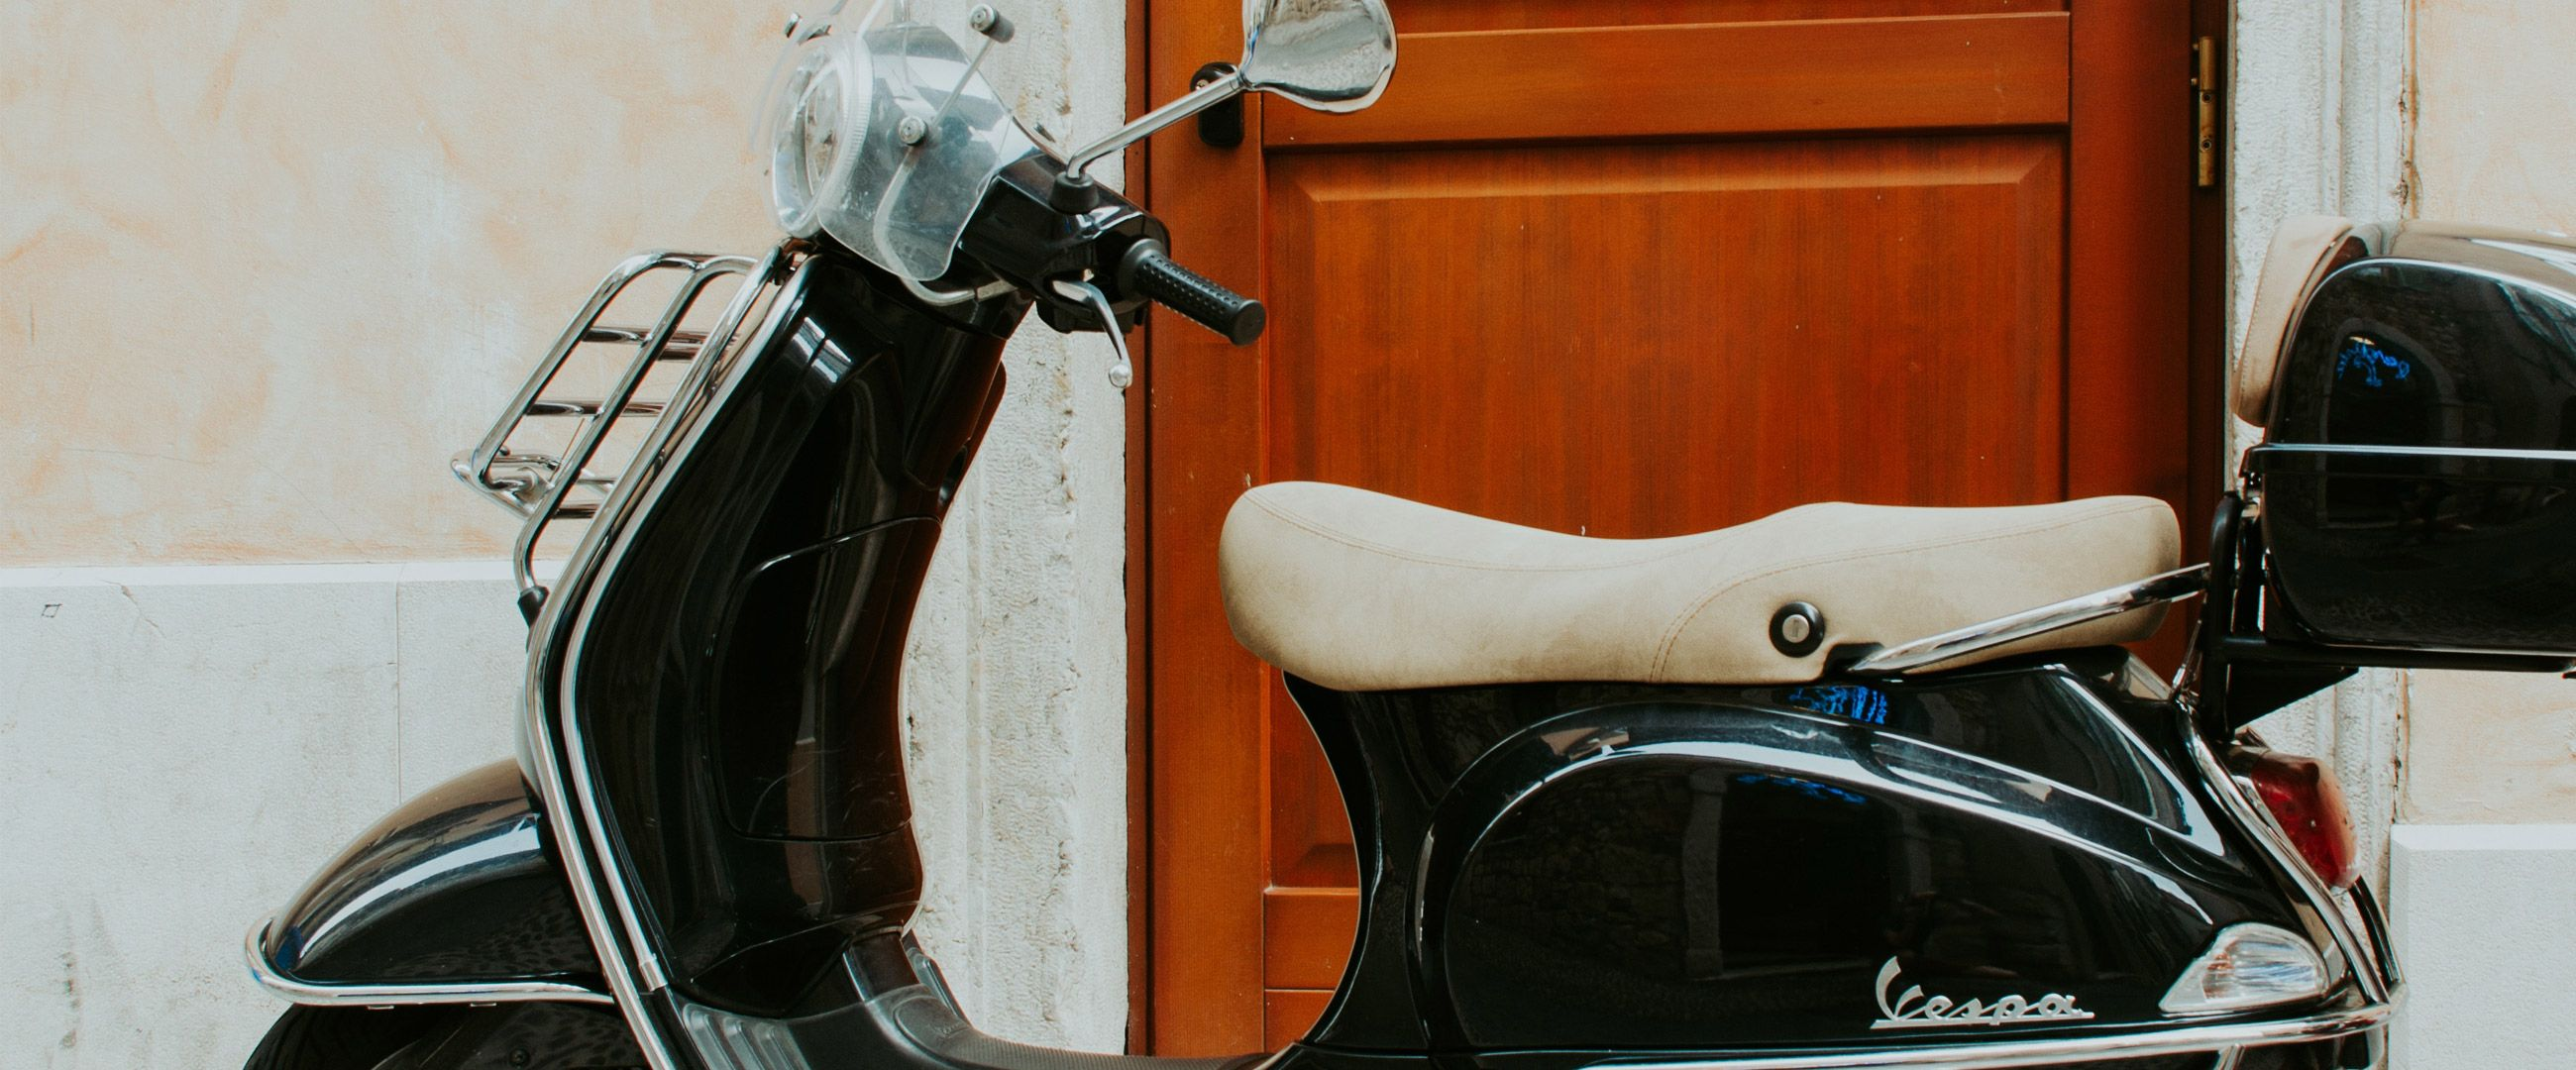 rent a scooter Cagliari Sardinia